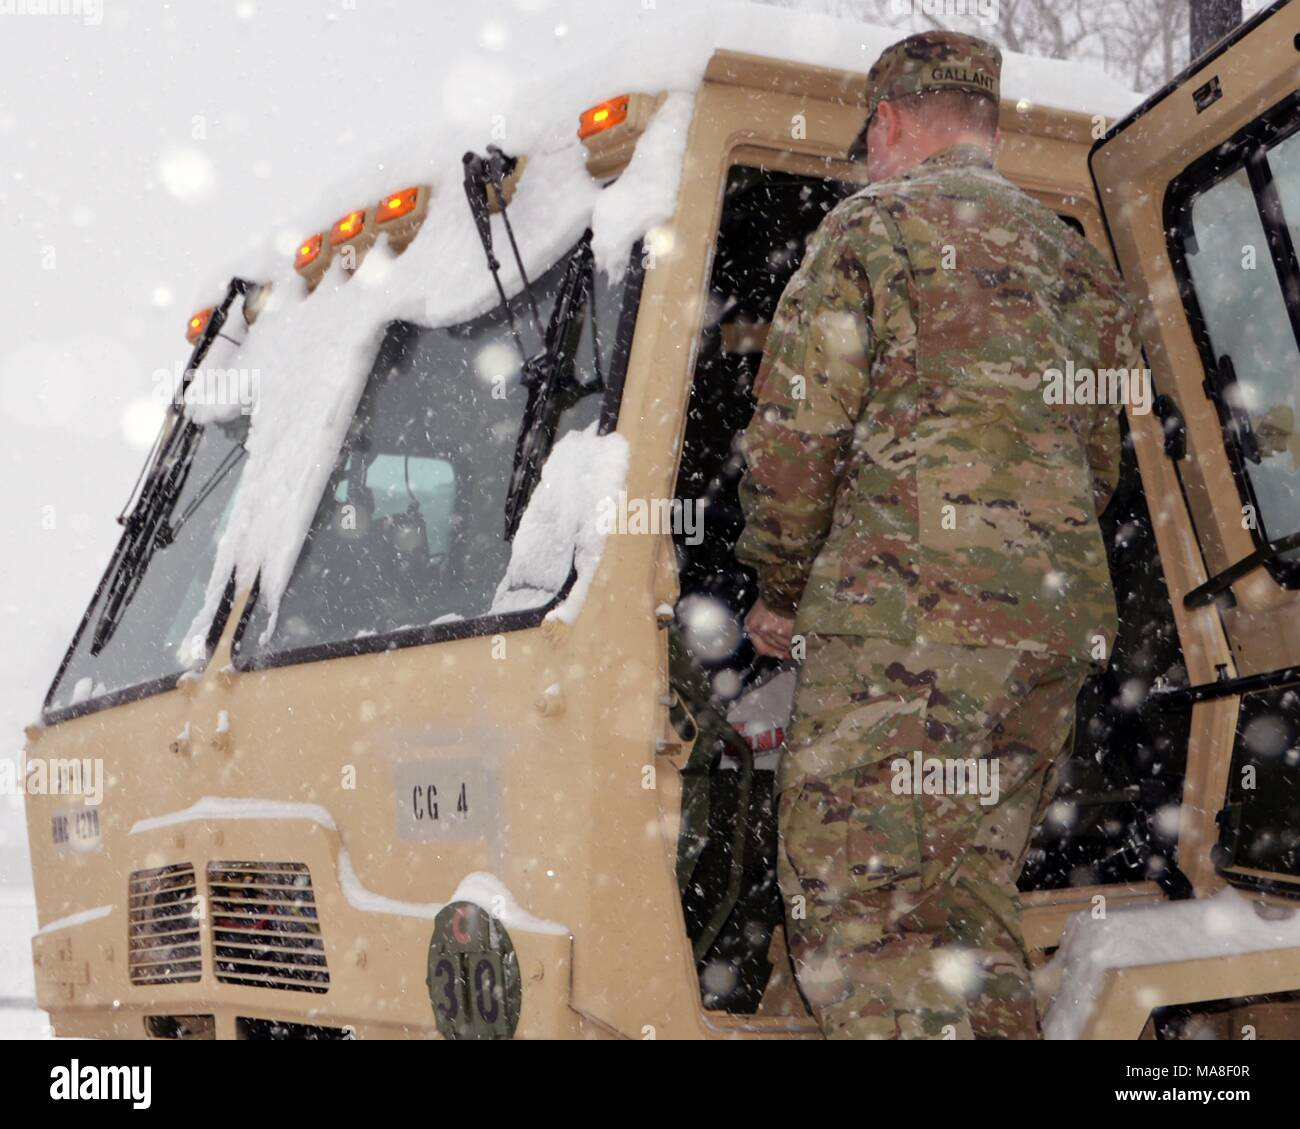 A New York Army National Guard Soldier from the 42nd Combat Aviation Brigade based in Latham, NNew York prepares his vehicle for missions as a massive snow storm hits New York, March 14, 2017. () Stock Photo